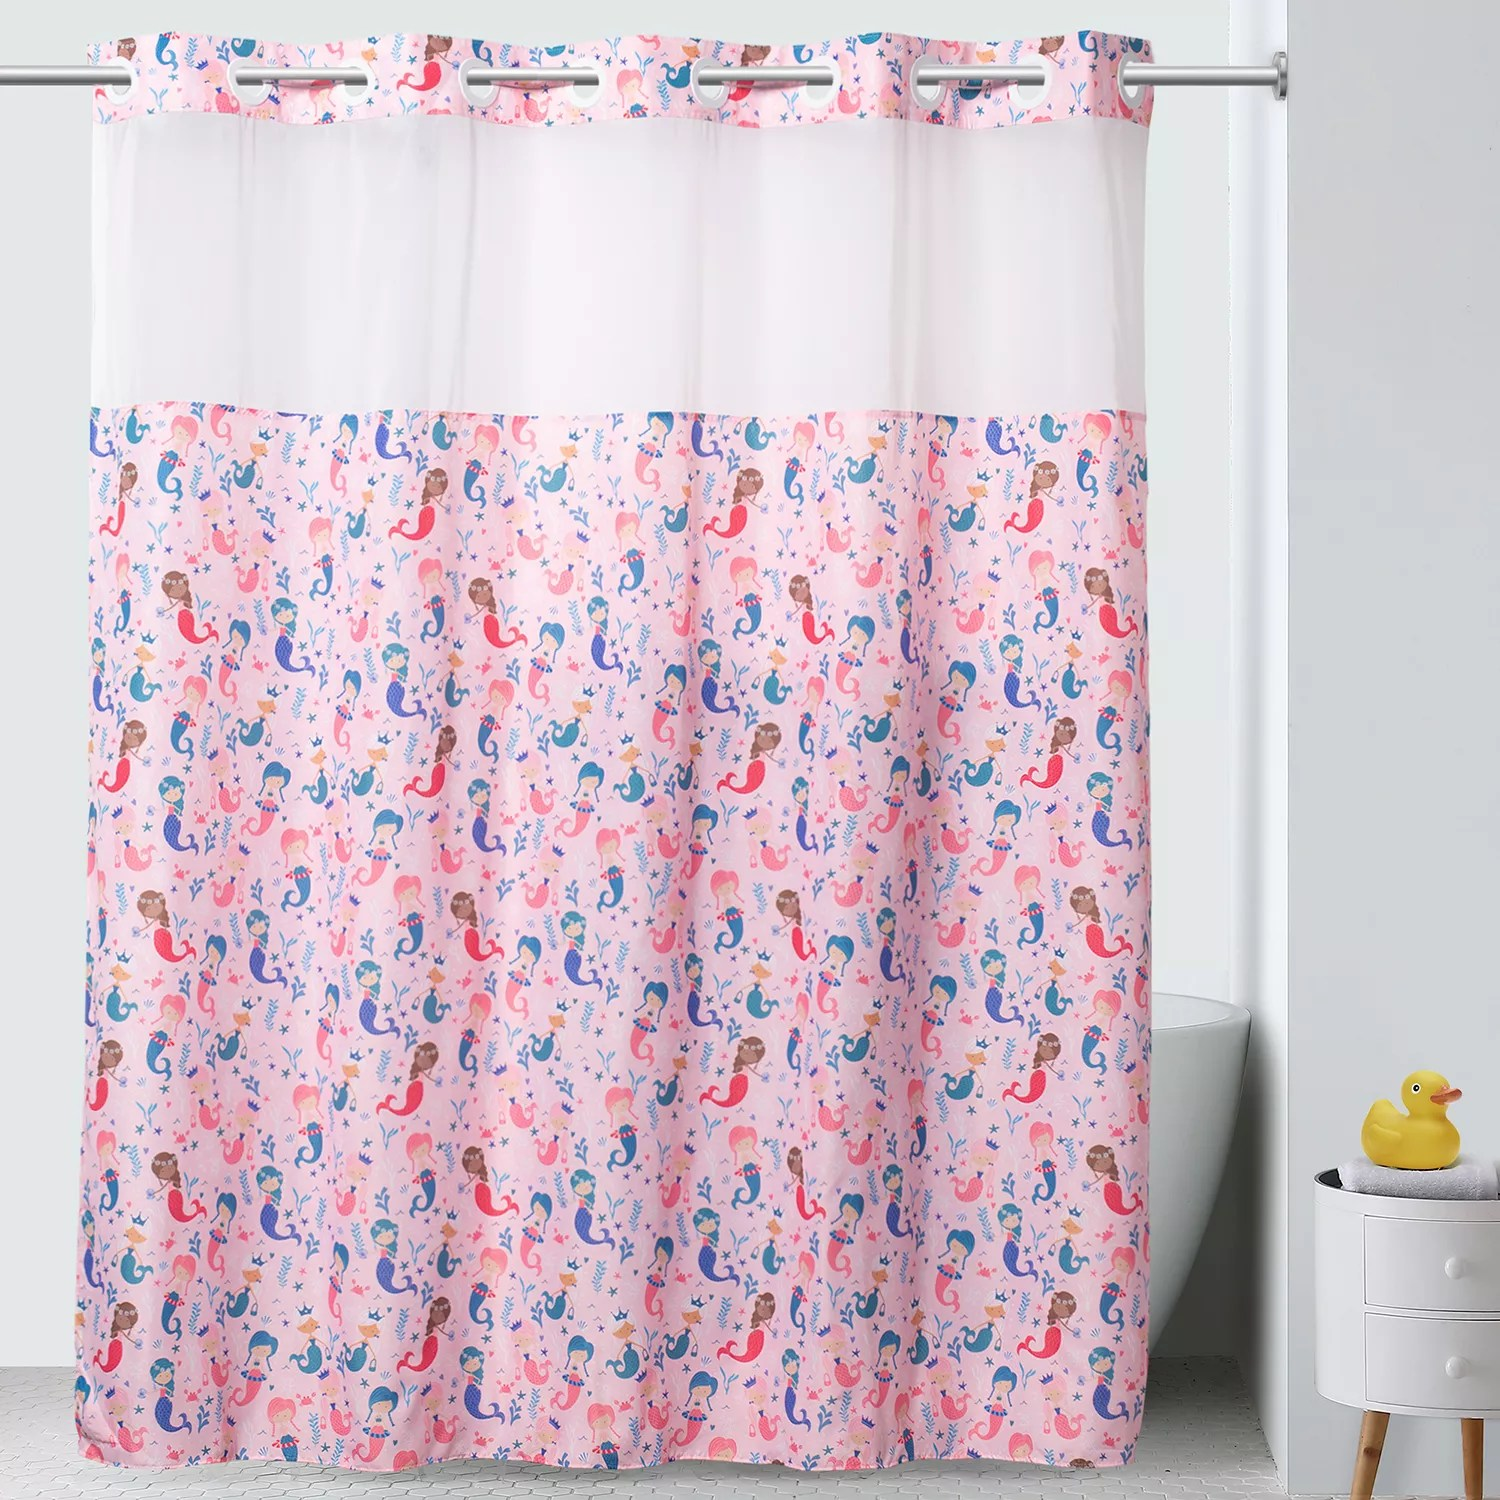 hookless shower curtain liners kohl s